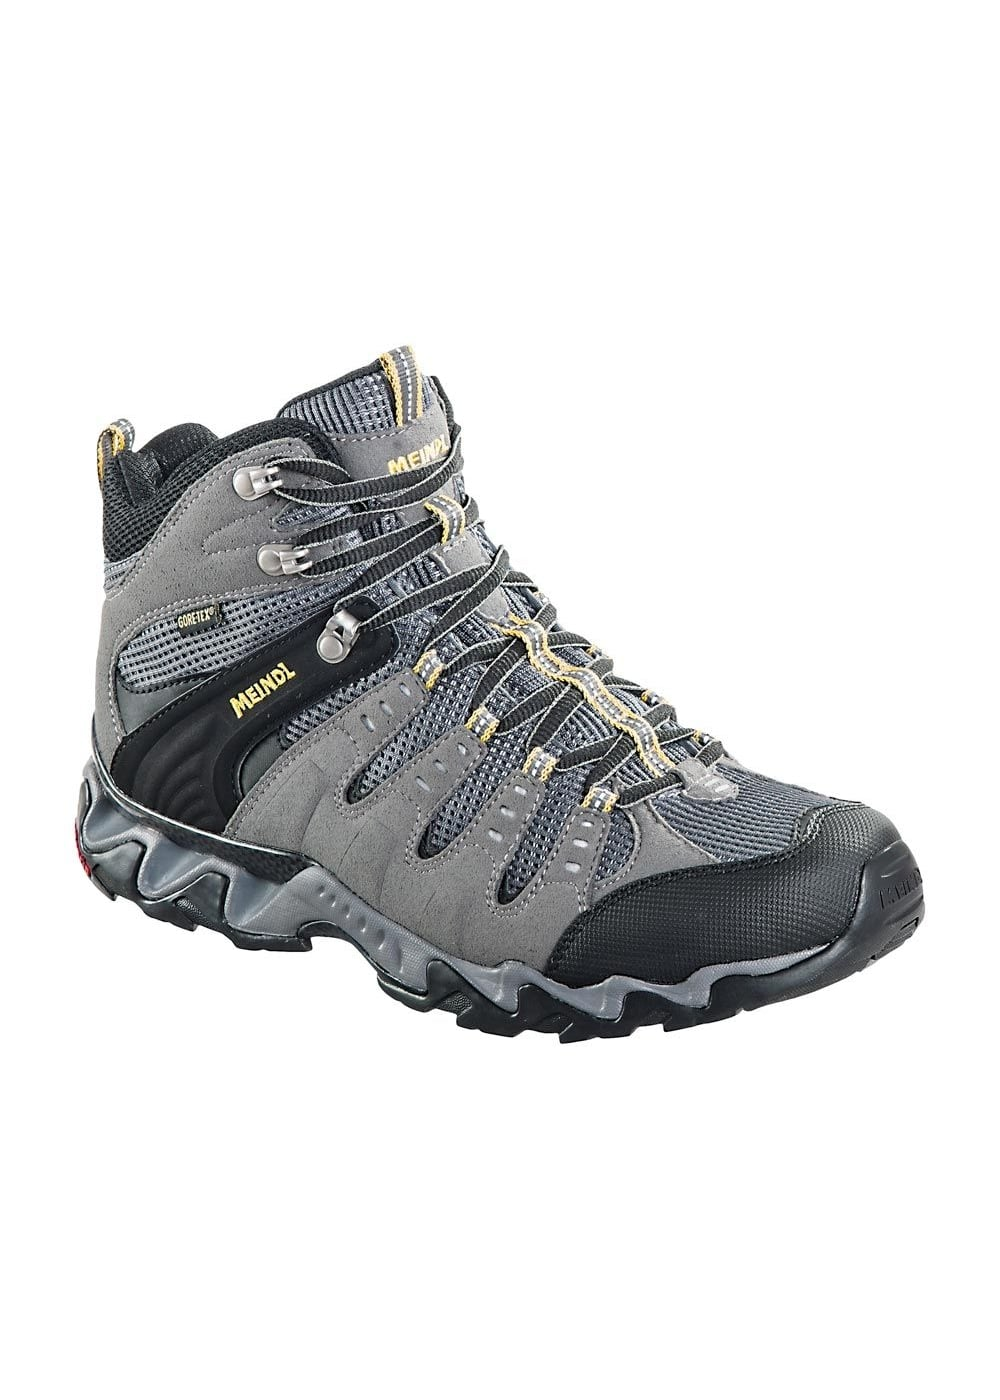 Meindl Respond Mid GTX Boots  Large Image